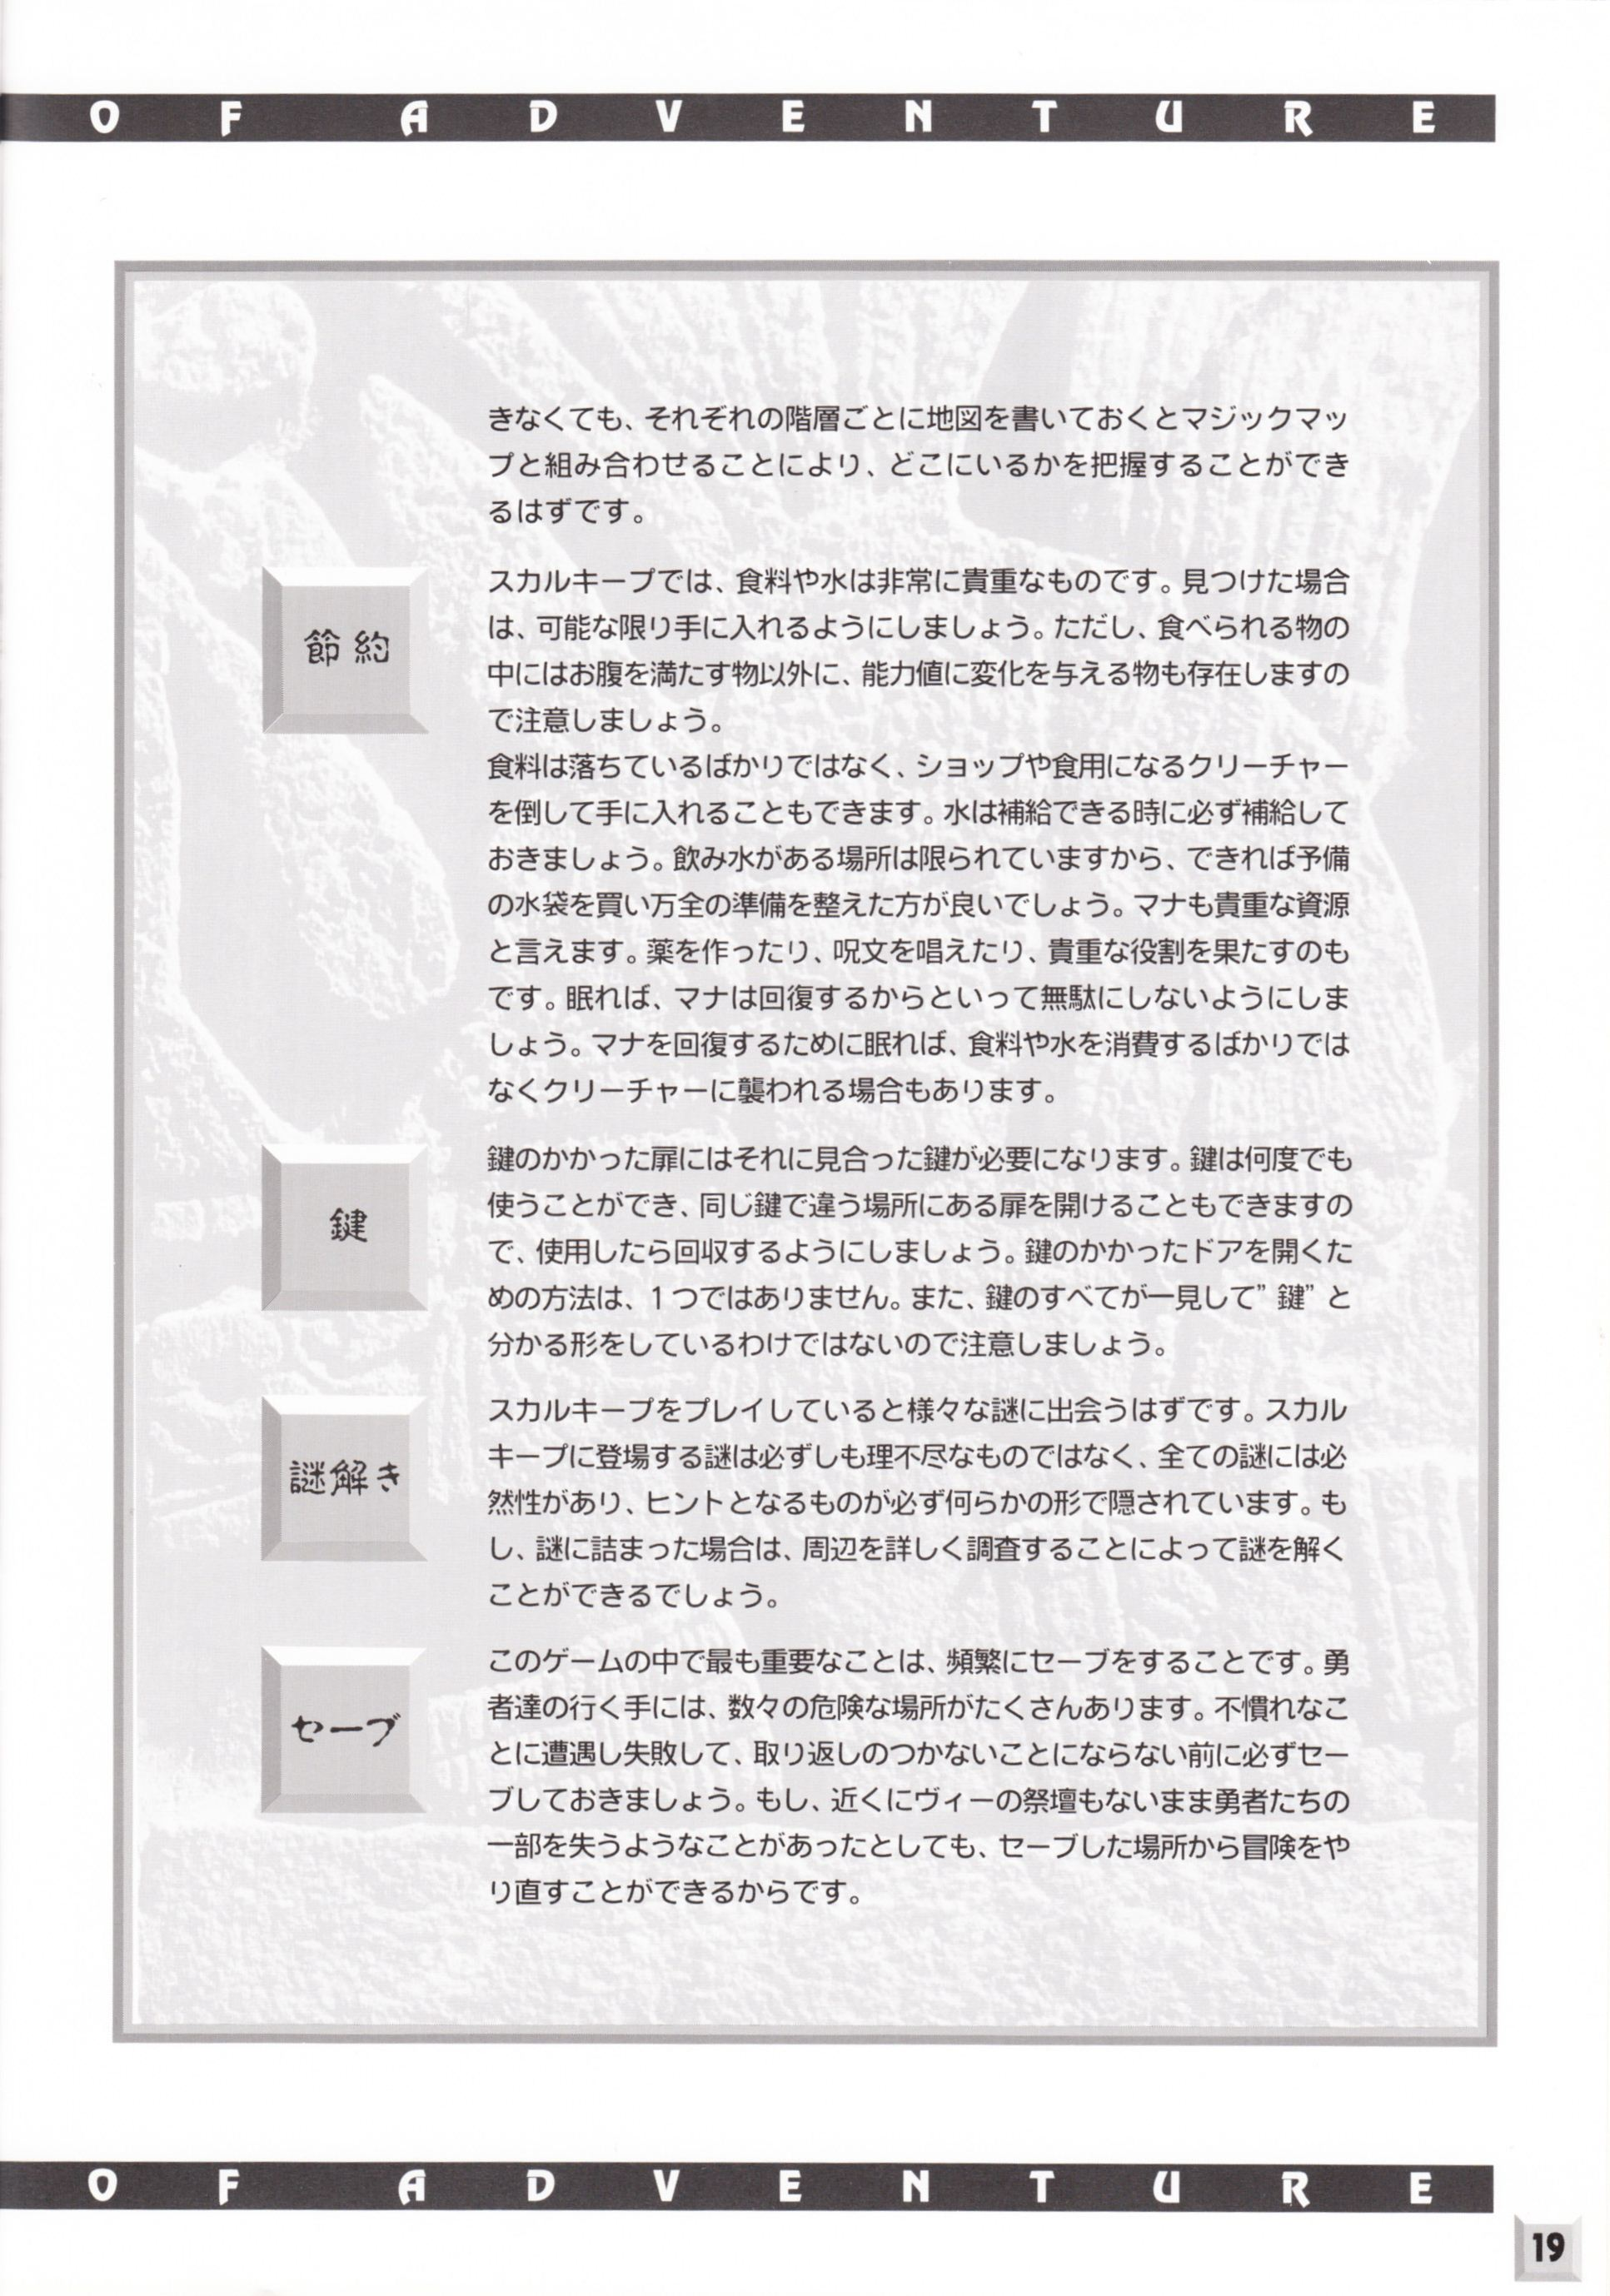 Game - Dungeon Master II - JP - PC-9801 - 3.5-inch - The Guidance Of Adventure - Page 021 - Scan